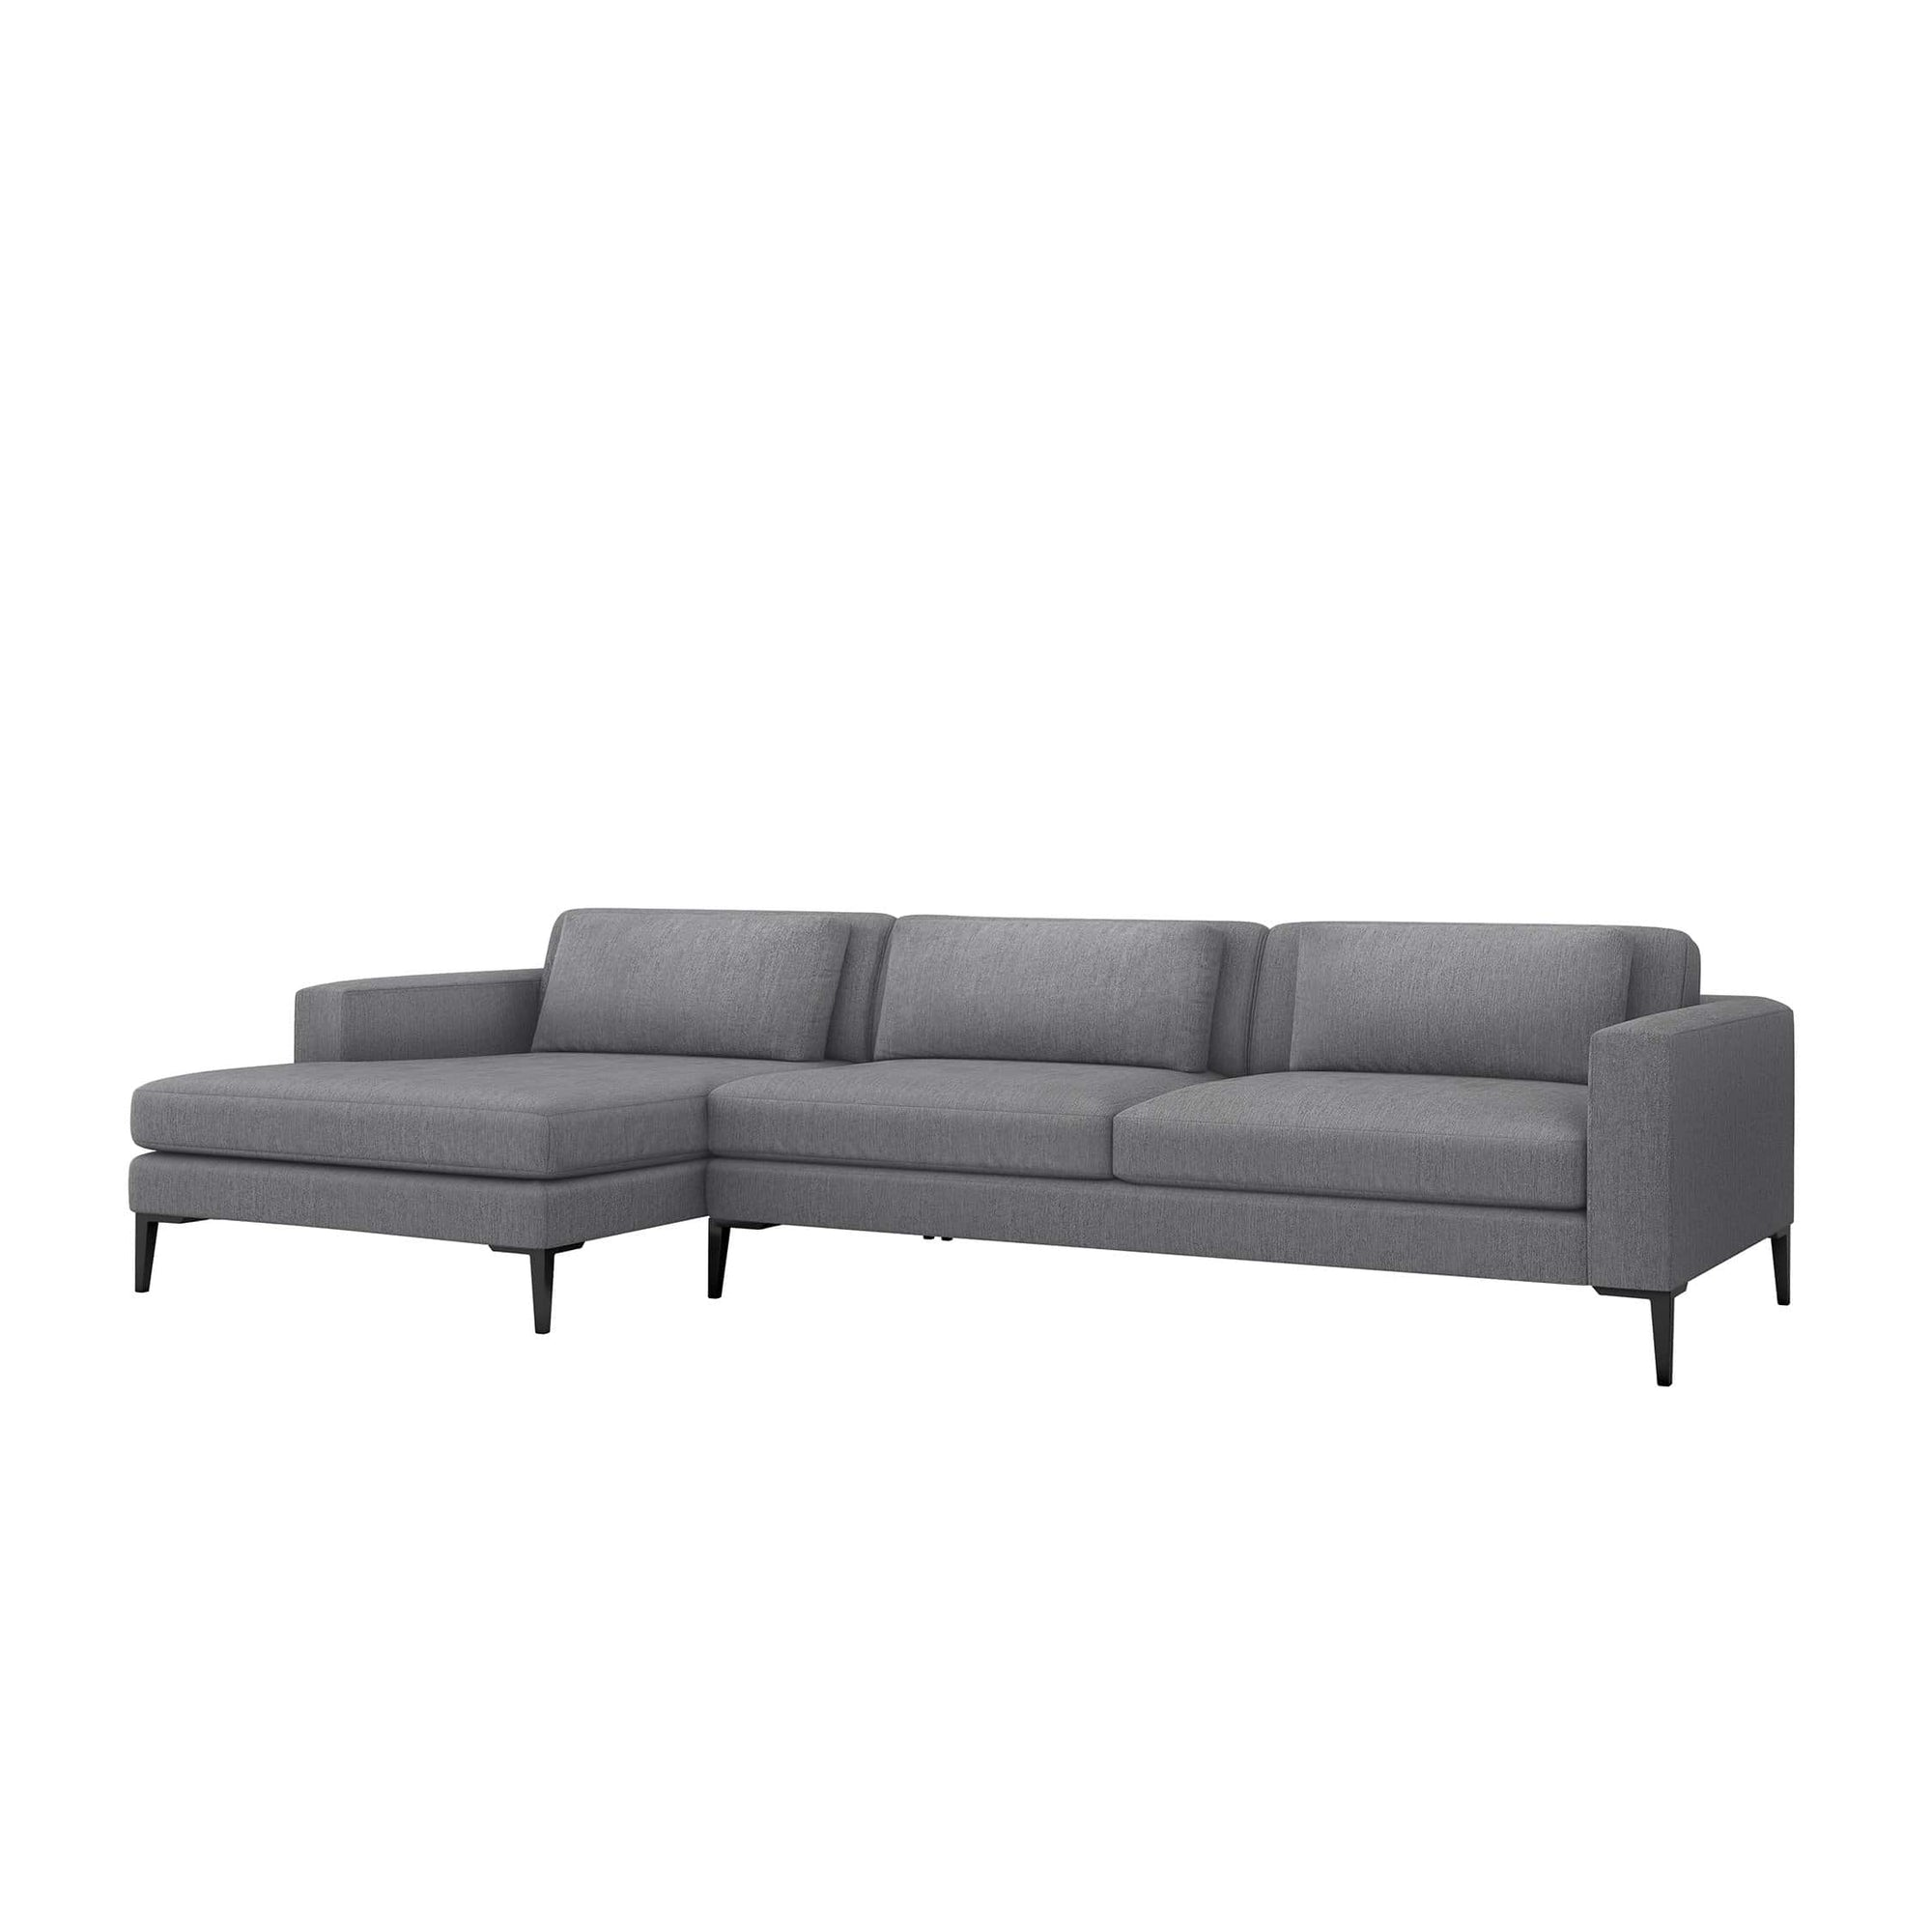 Interlude Home Interlude Home Izzy Left Chaise 2 Piece Sectional - Dark Gray 199015-3